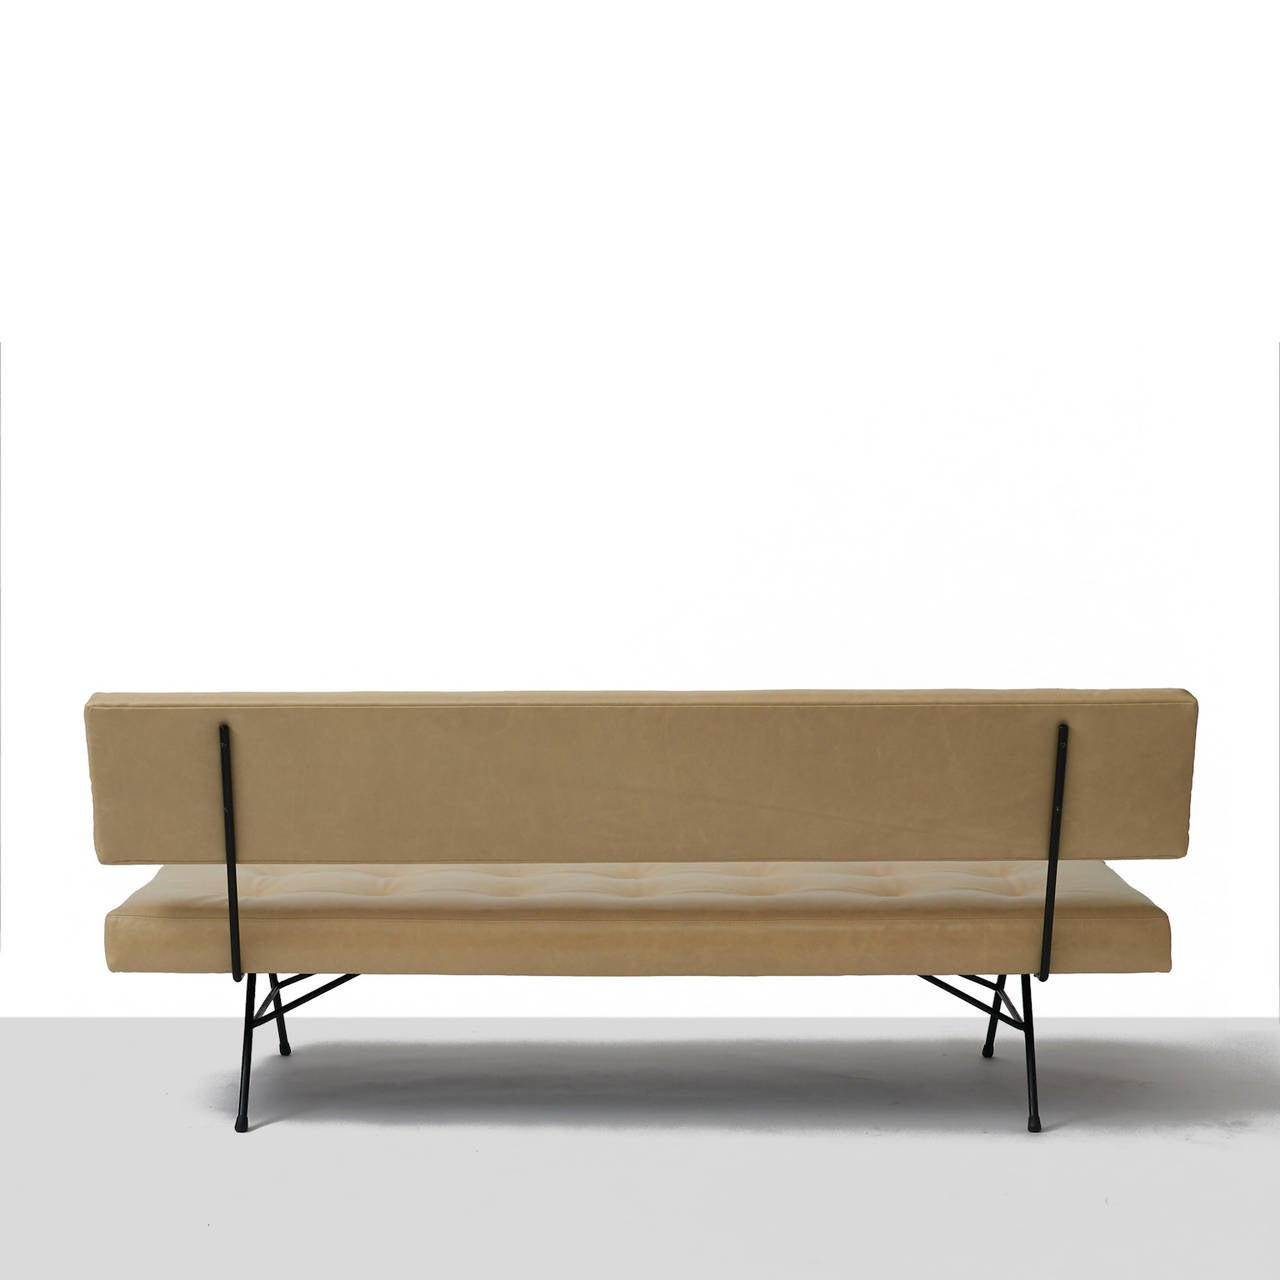 American Norman Cherner, Sofa For Sale